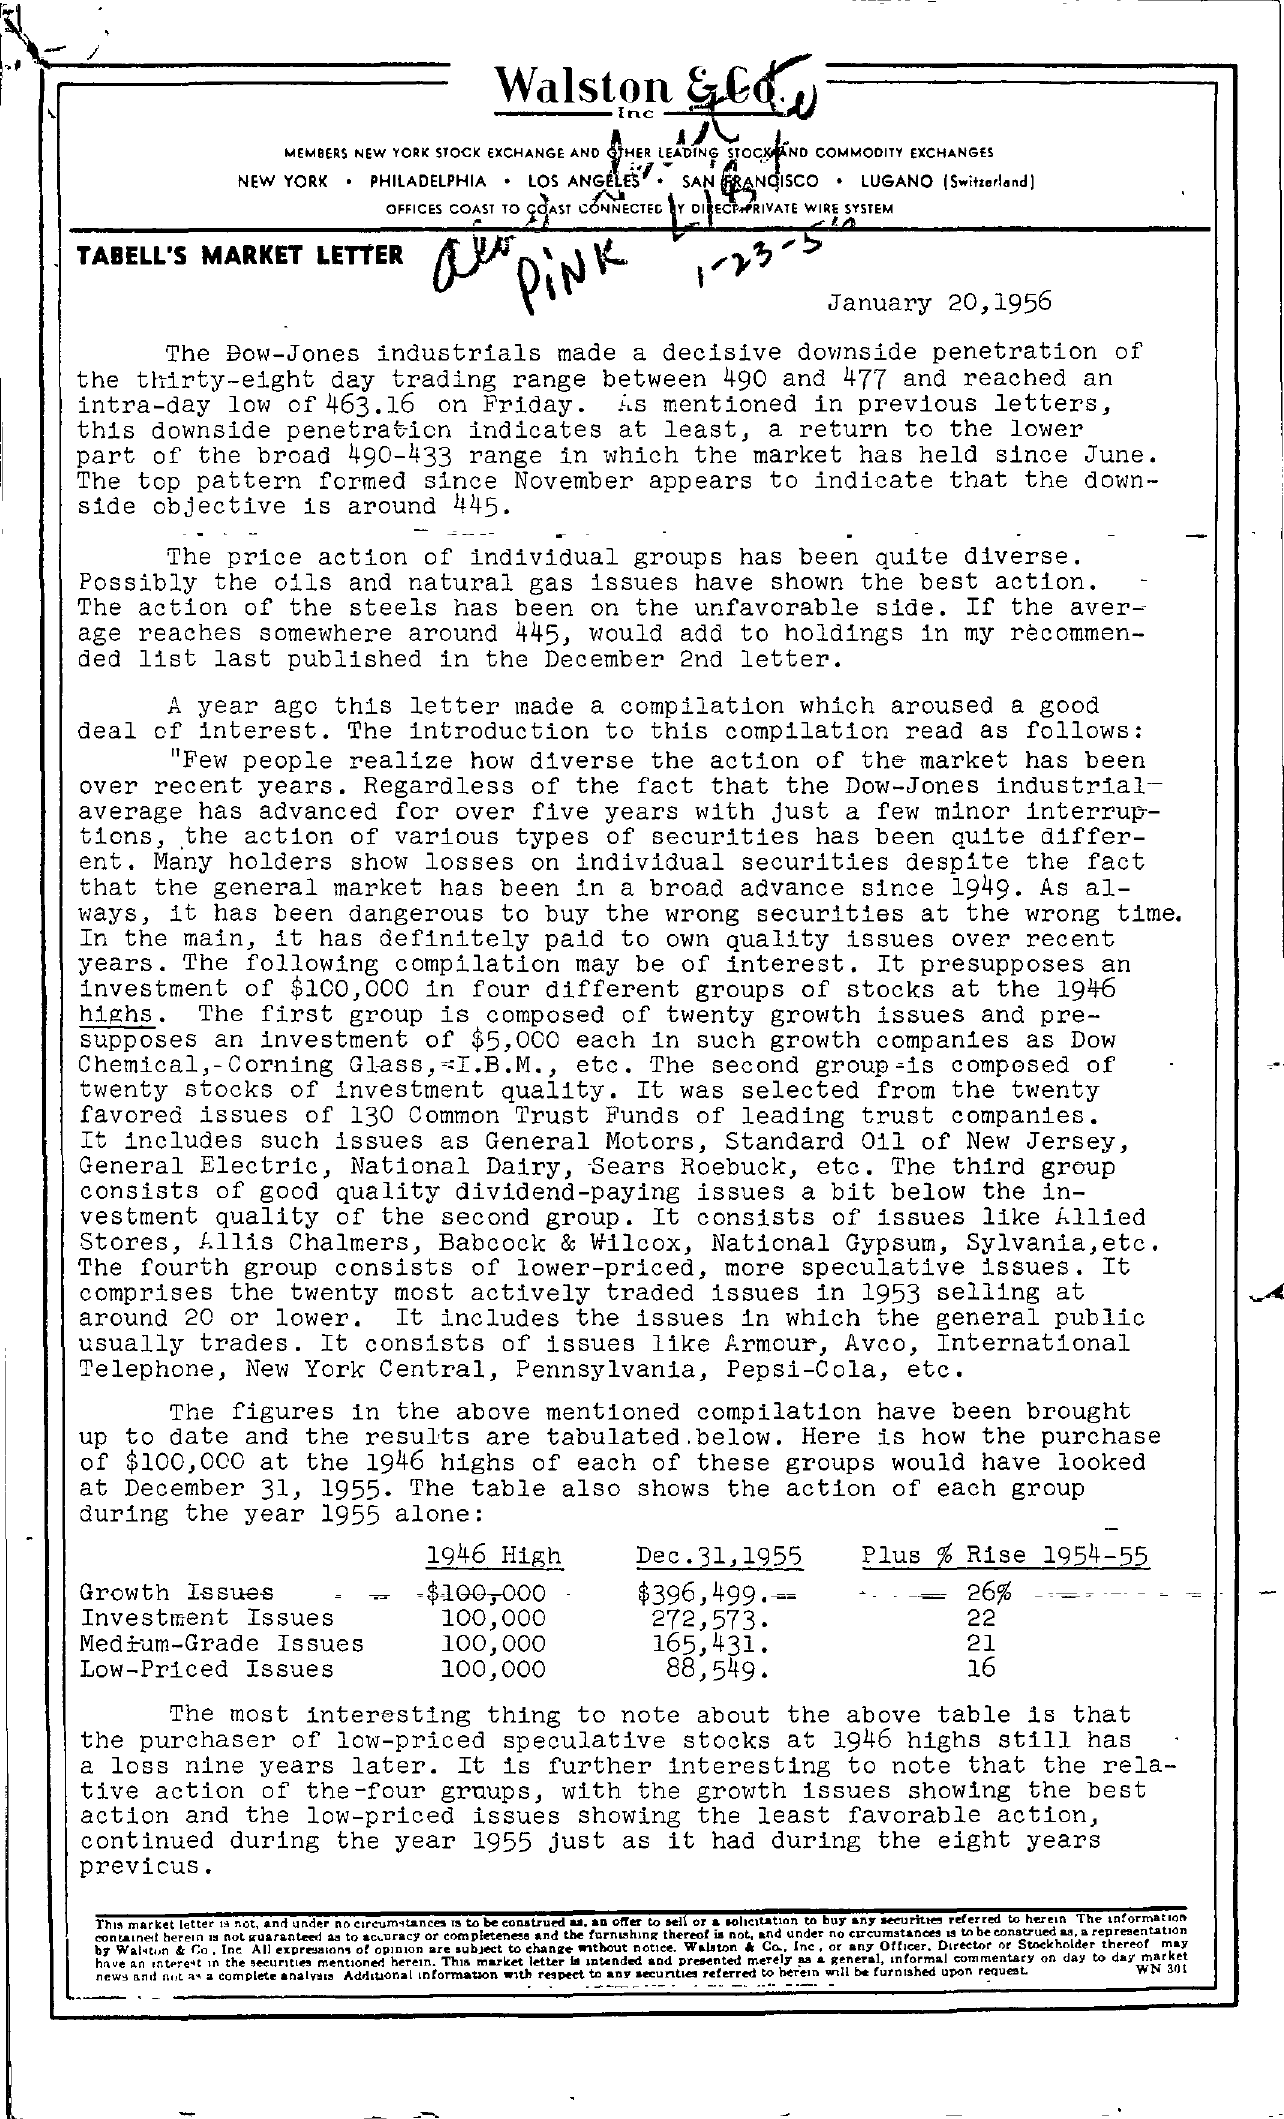 Tabell's Market Letter - January 20, 1956 page 1